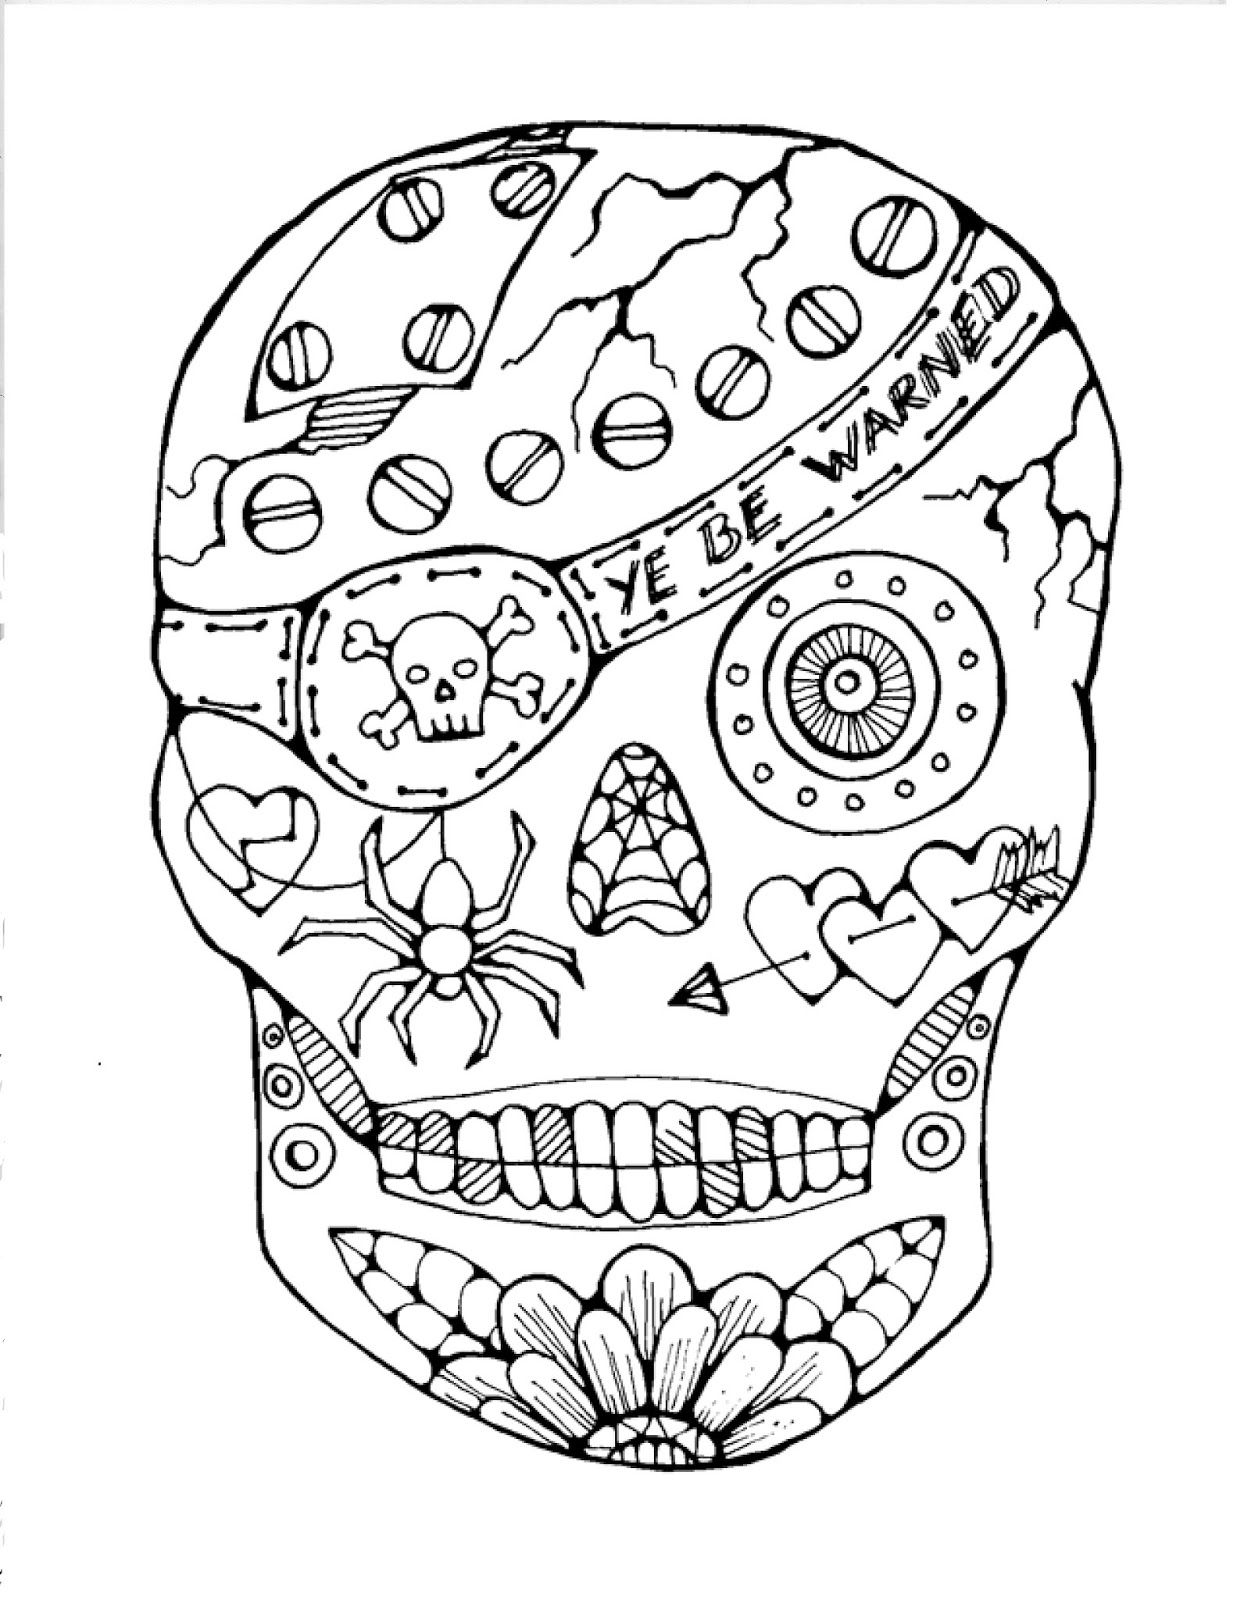 No Tricks Just A Treat Free Coloring Page With Images Skull